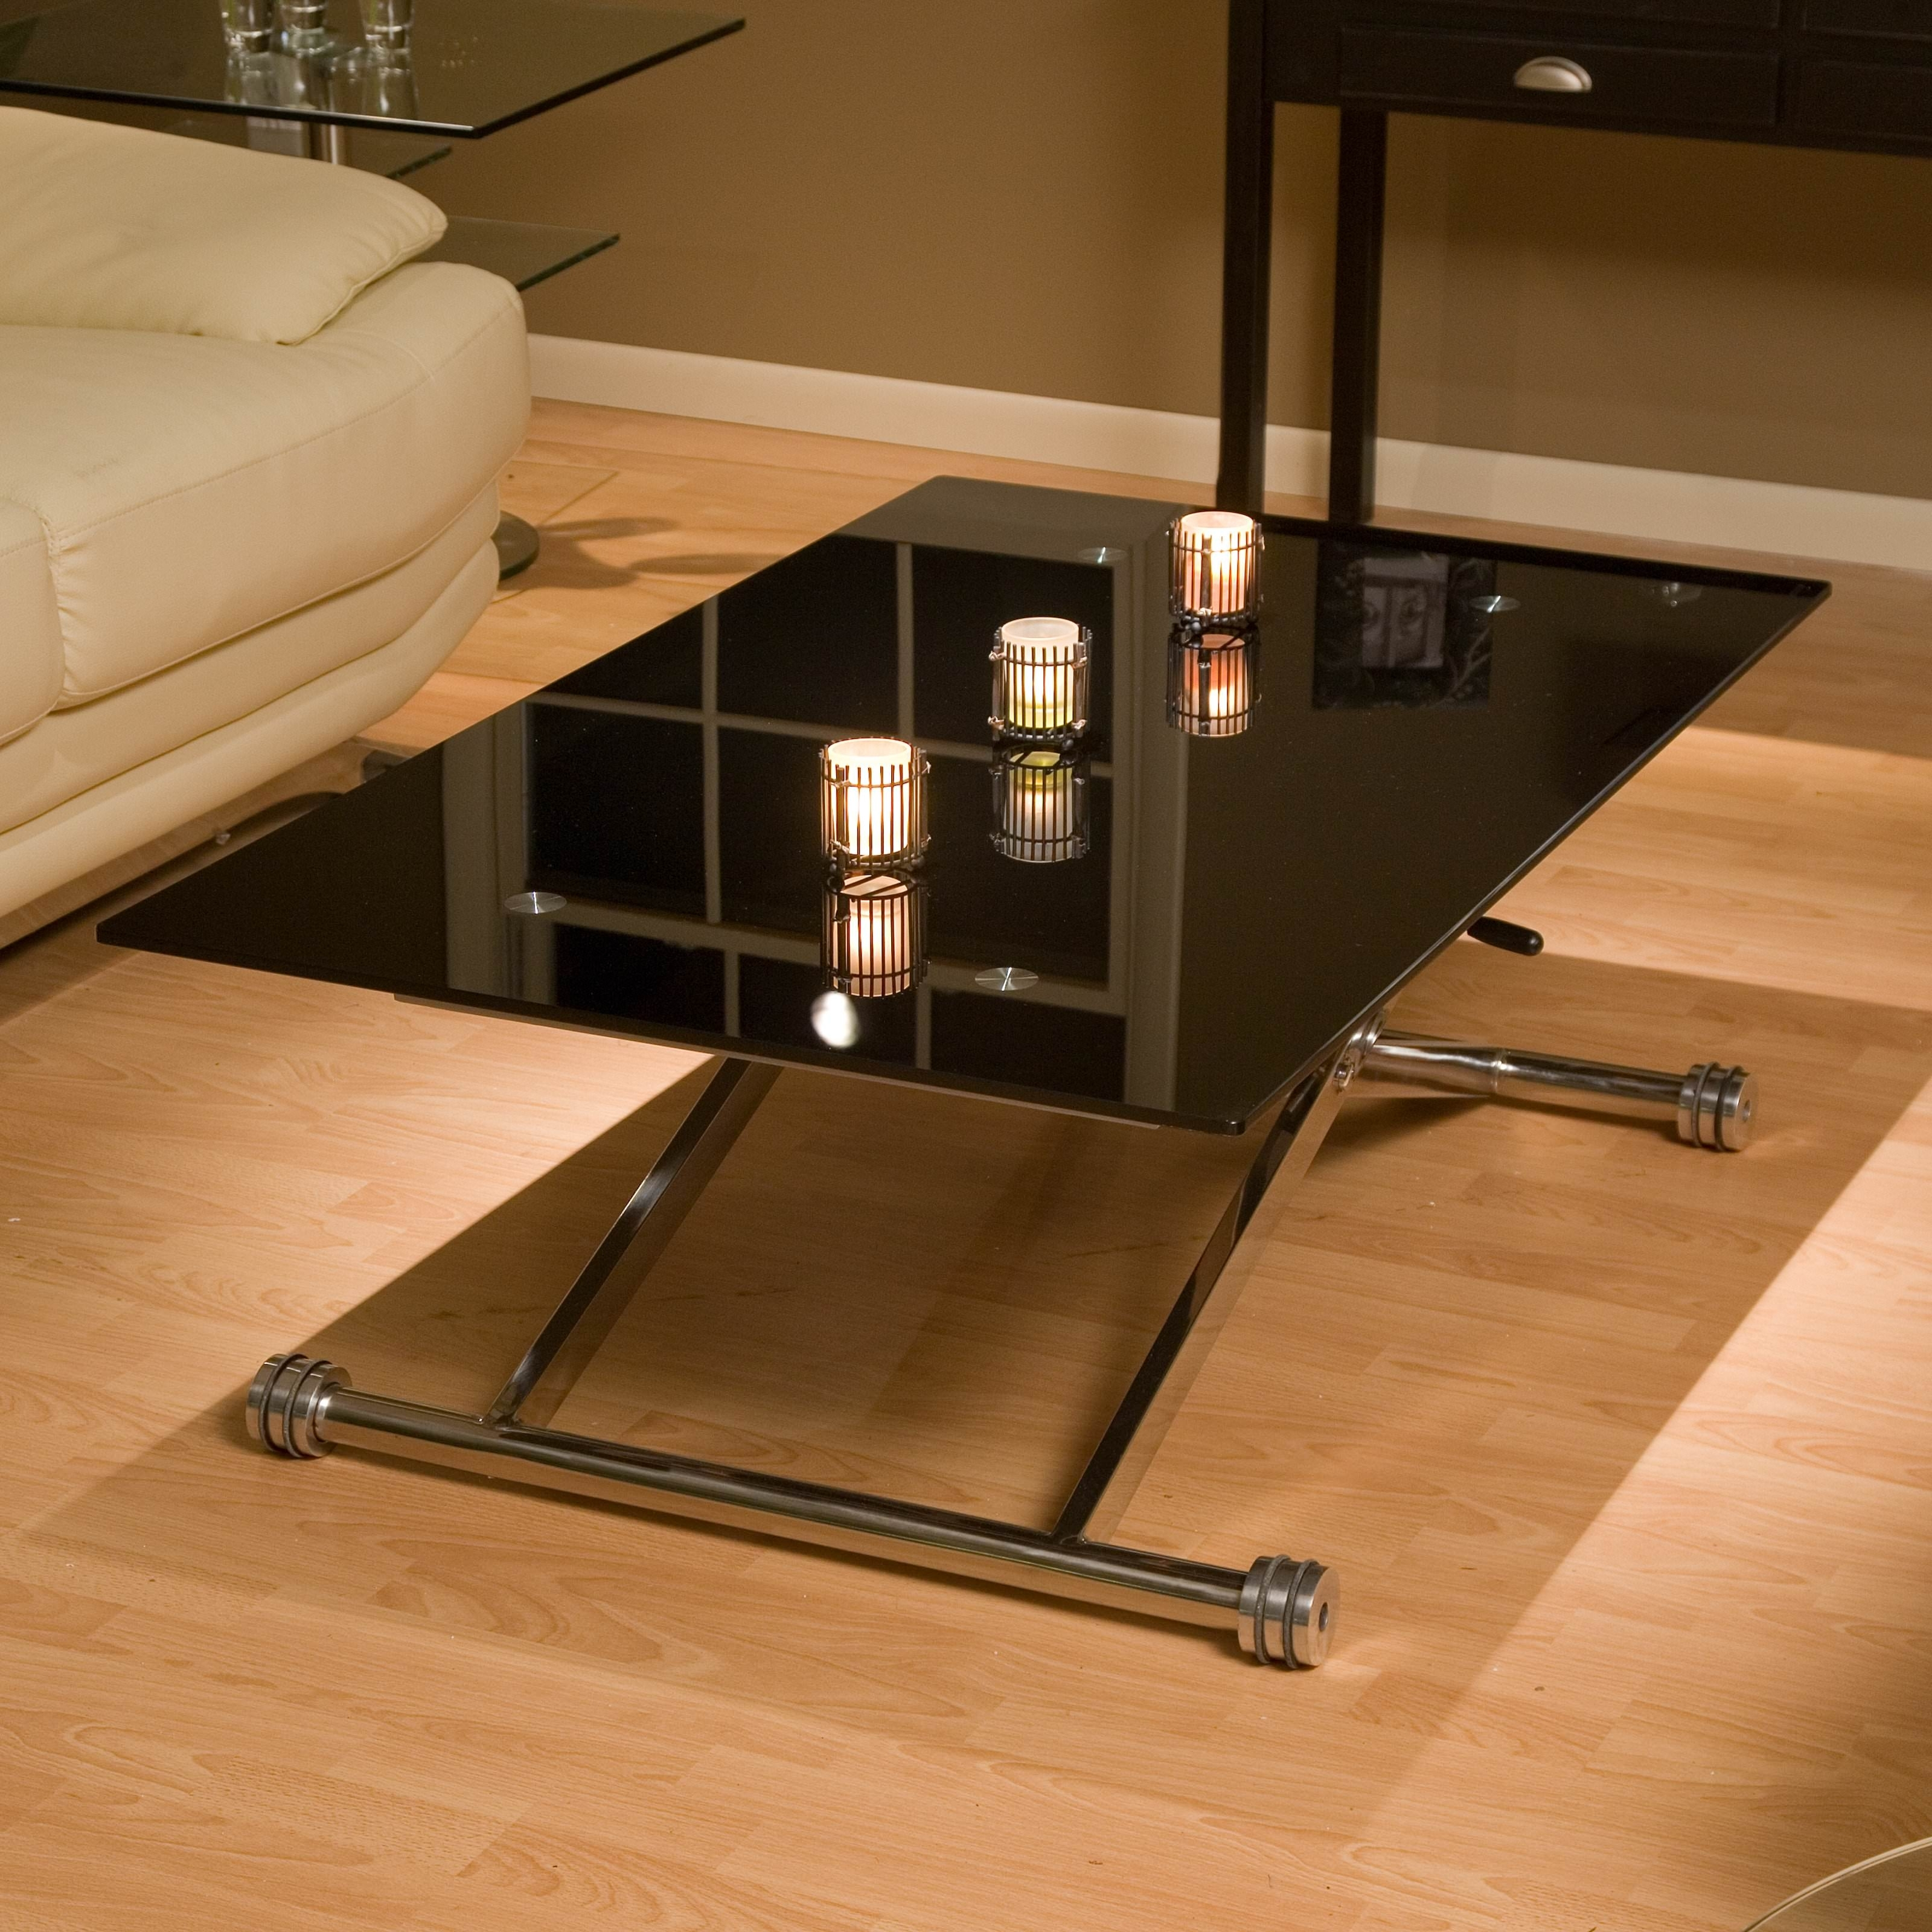 Adjustable Height Coffee Table Glass Top — Sushi Ichimura Decor Within Smart Glass Top Coffee Tables (View 3 of 30)